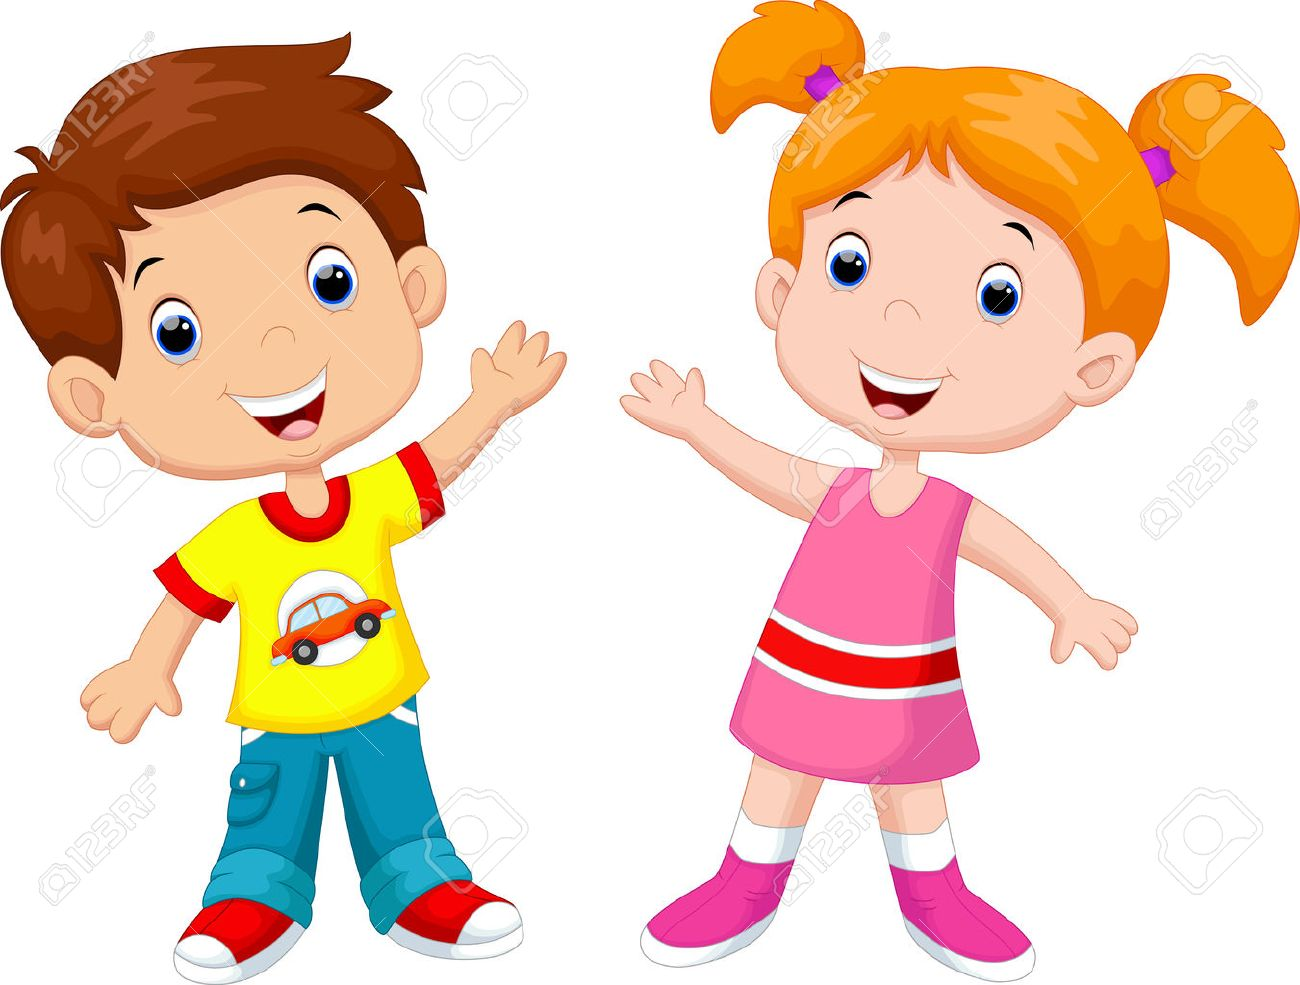 boy and girl clipart 6 clipart station rh clipartstation com boy and girl clipart love boy and girl talking clipart